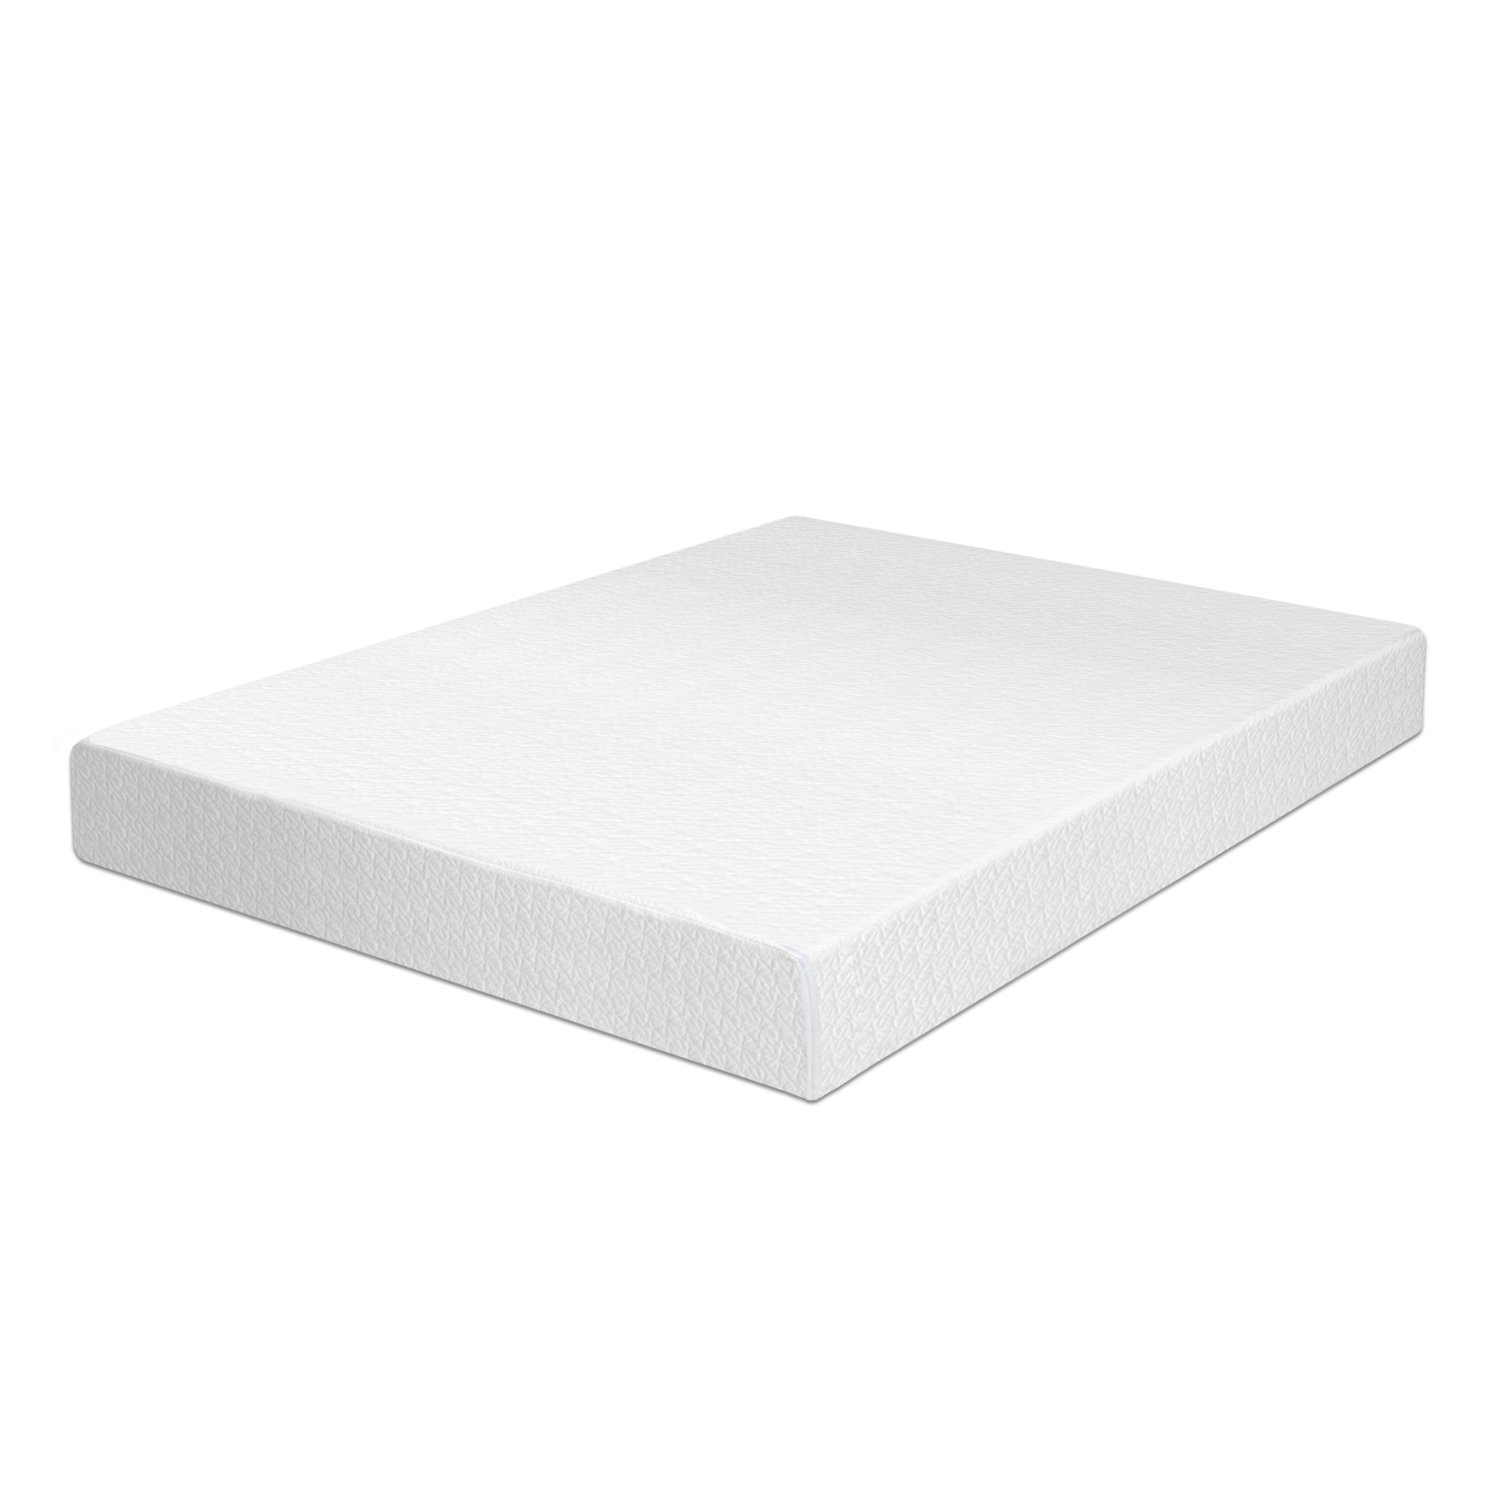 Where Can I Buy Sleep Master 13-Inch Pillow Top Pressure Relief Memory Foam Mattress Set With Bi-Fold Boxspring, Full